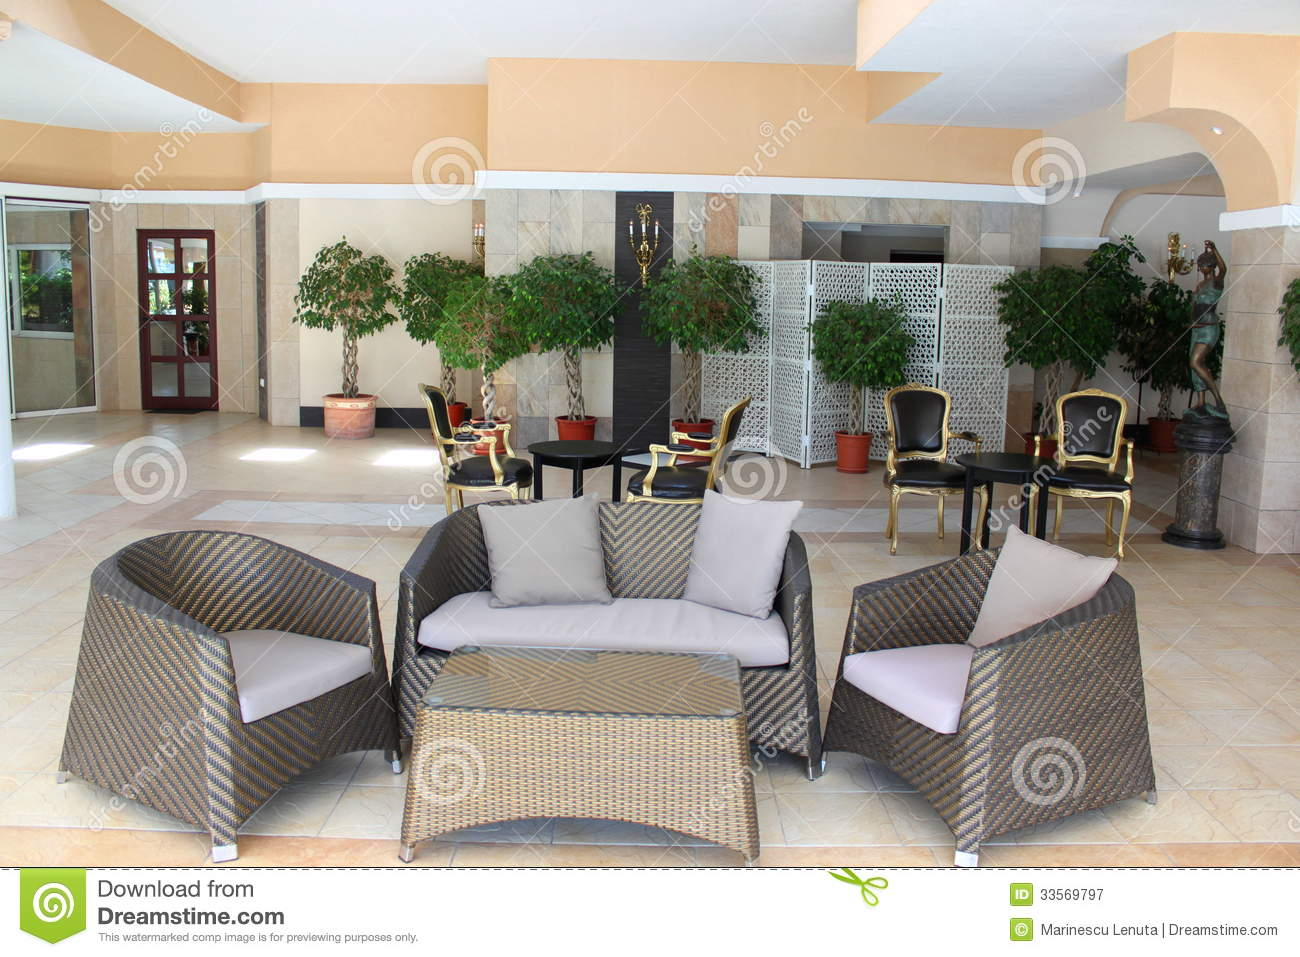 Luxury hotel lobby royalty free stock photography image